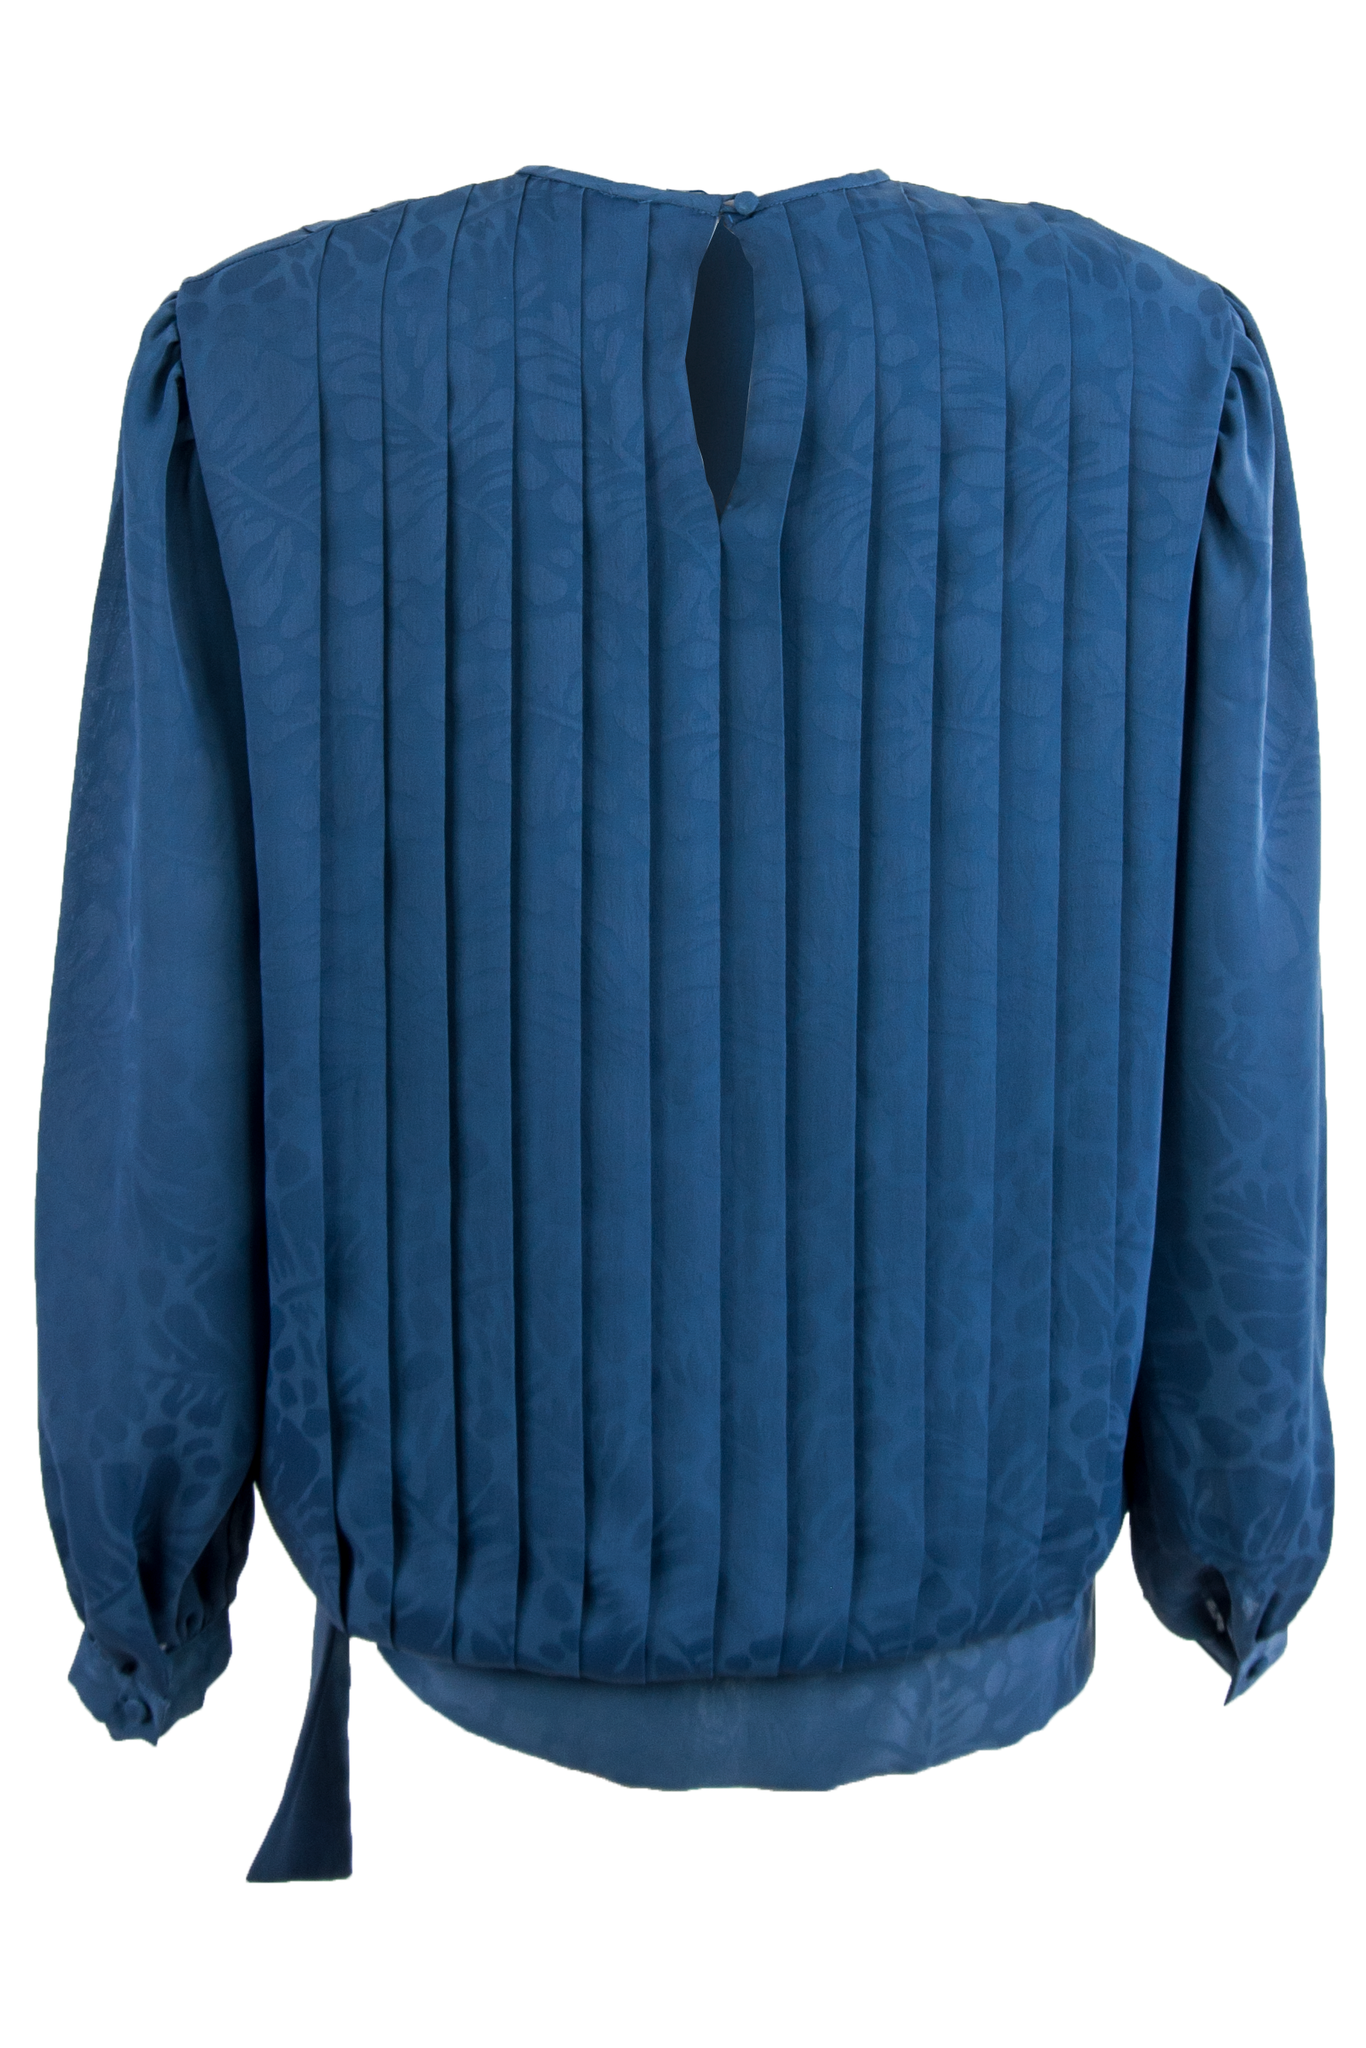 blue pleated blouse with keyhole closure